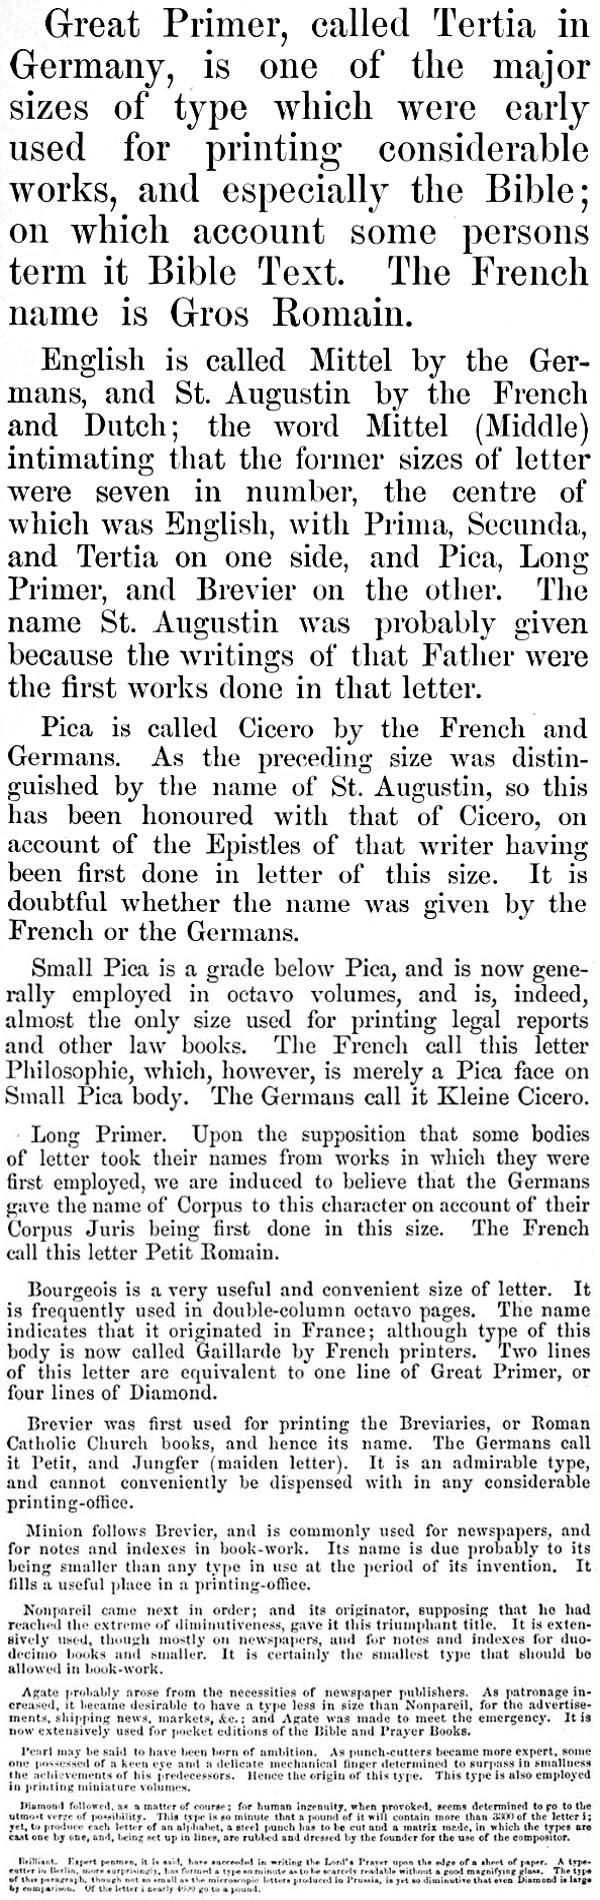 The project gutenberg ebook of the american printer a manual of image of the different type sizes fandeluxe Gallery